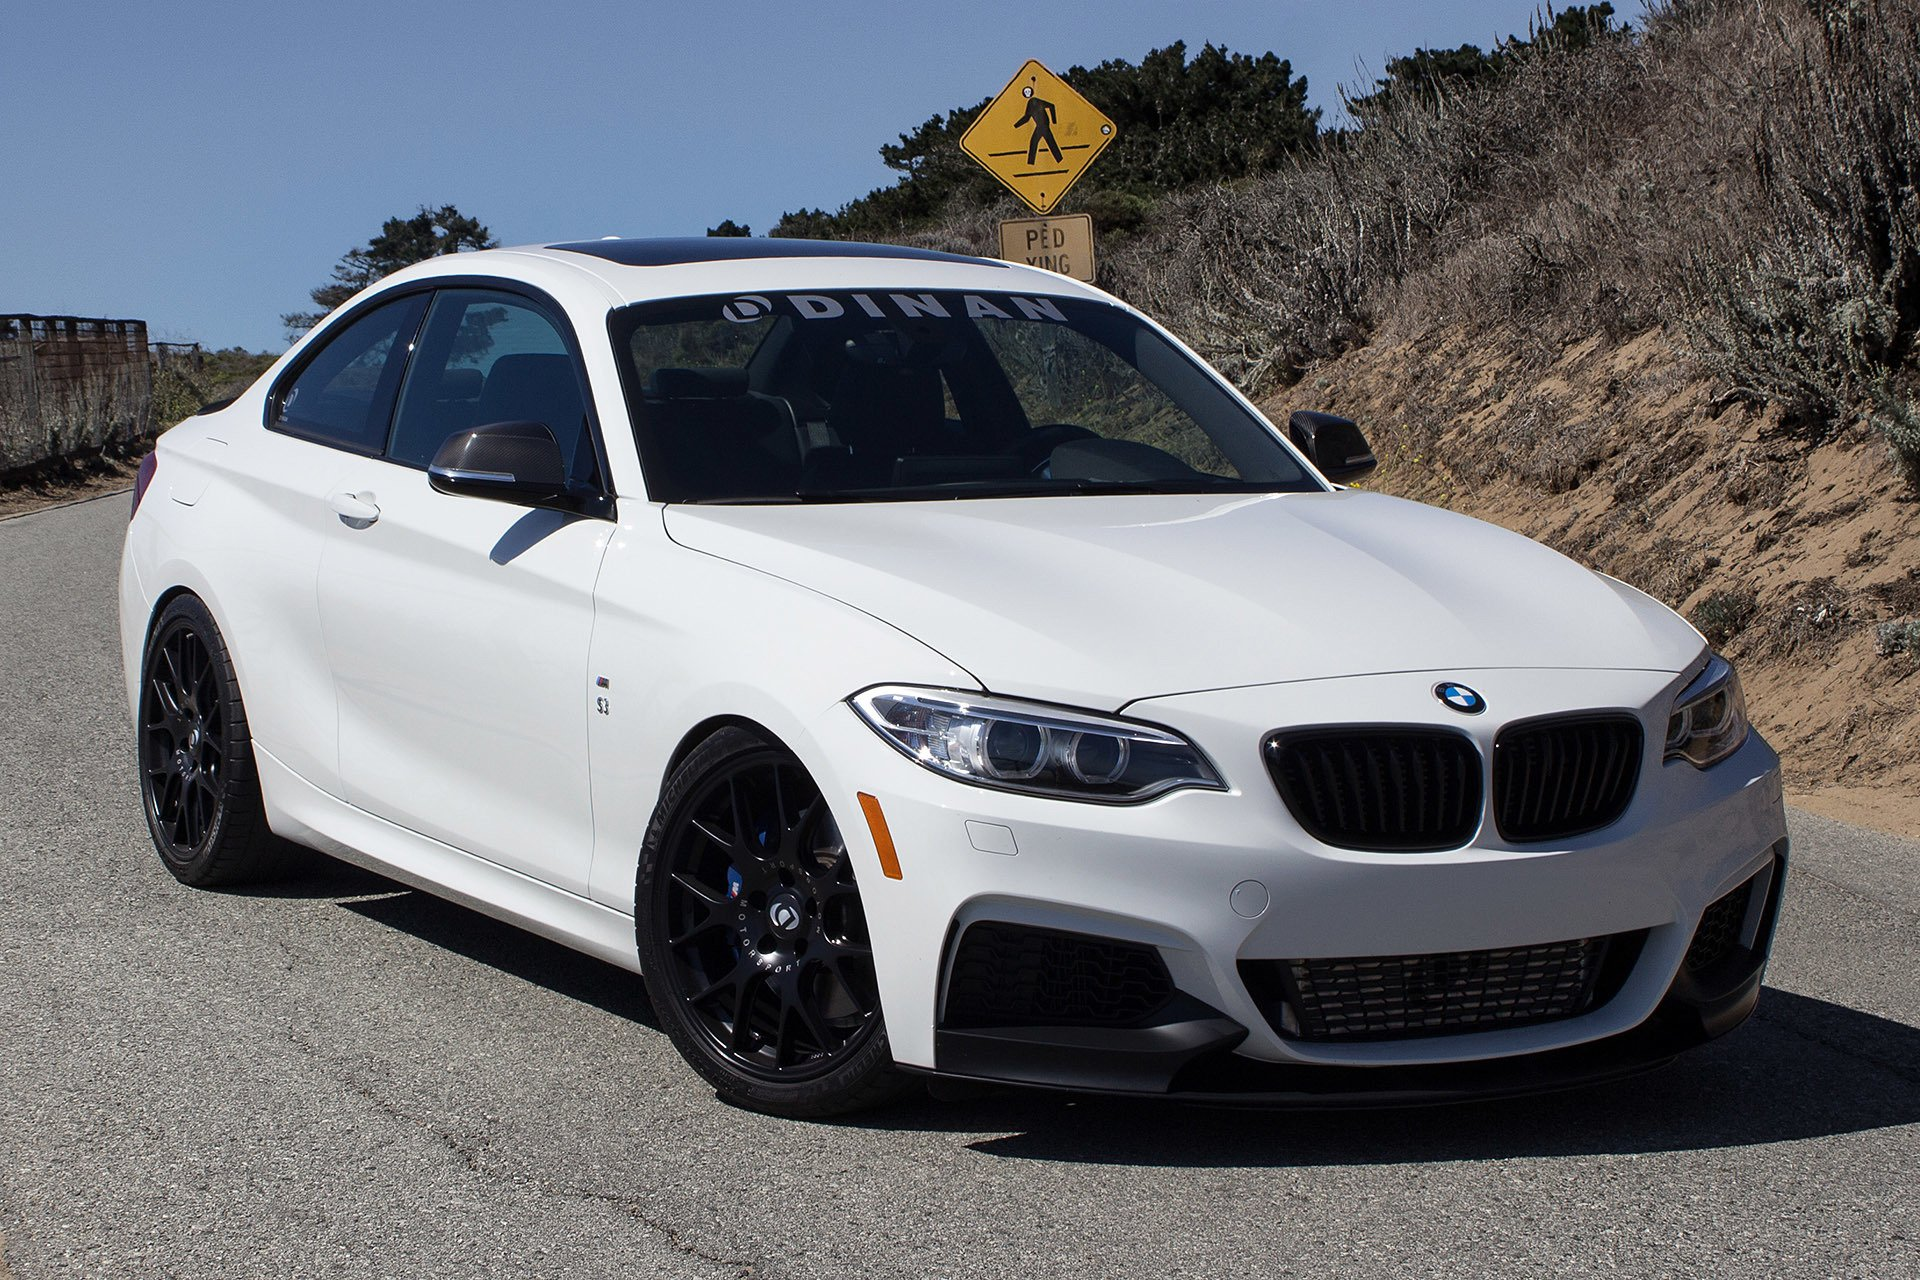 2015 Dinan M235i Bmw Cars Coupe White Modified Wallpaper